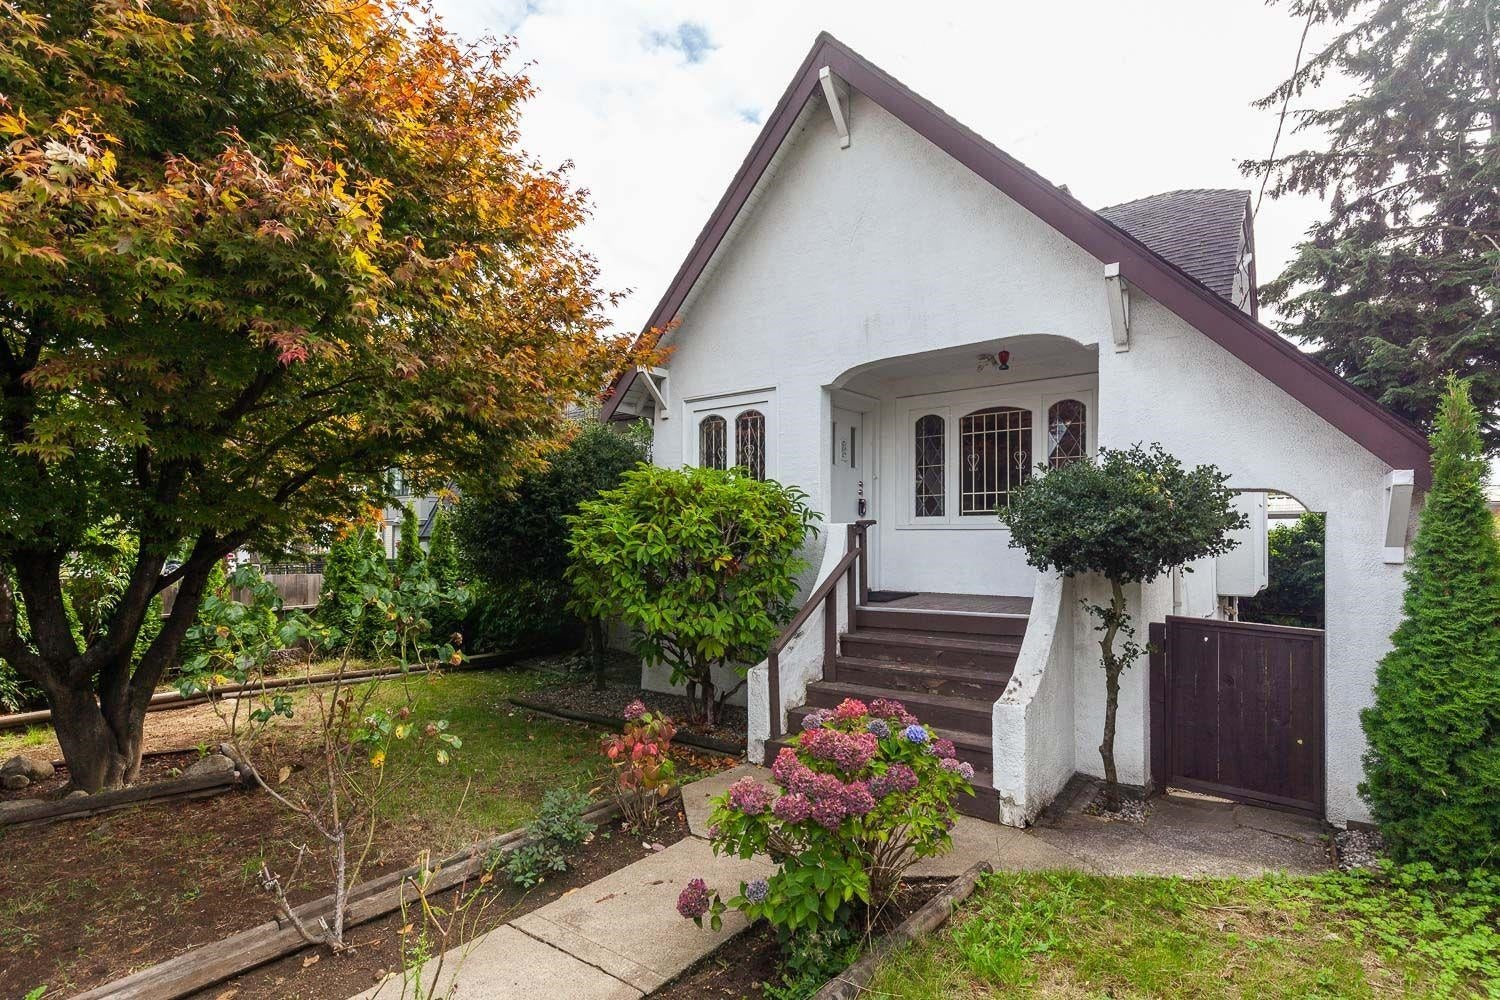 1058 PARK DRIVE - Marpole House/Single Family for sale, 4 Bedrooms (R2628006)